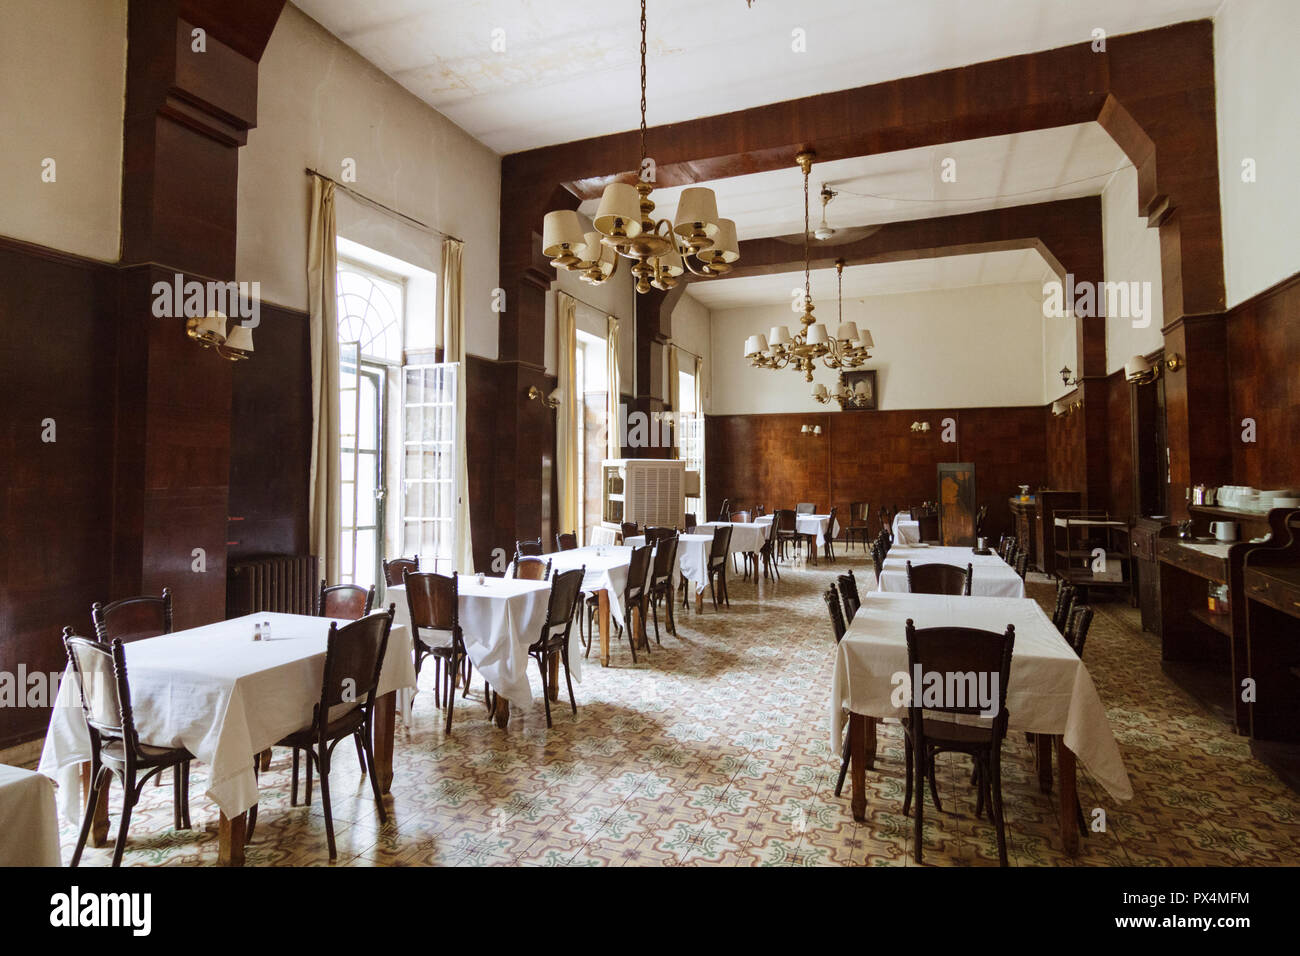 Aleppo, Aleppo Governorate, Syria : Restaurant of the Baron Hotel. Built betwen 1909 and 1911, the Baron is the oldest operating hotel in Syria. - Stock Image